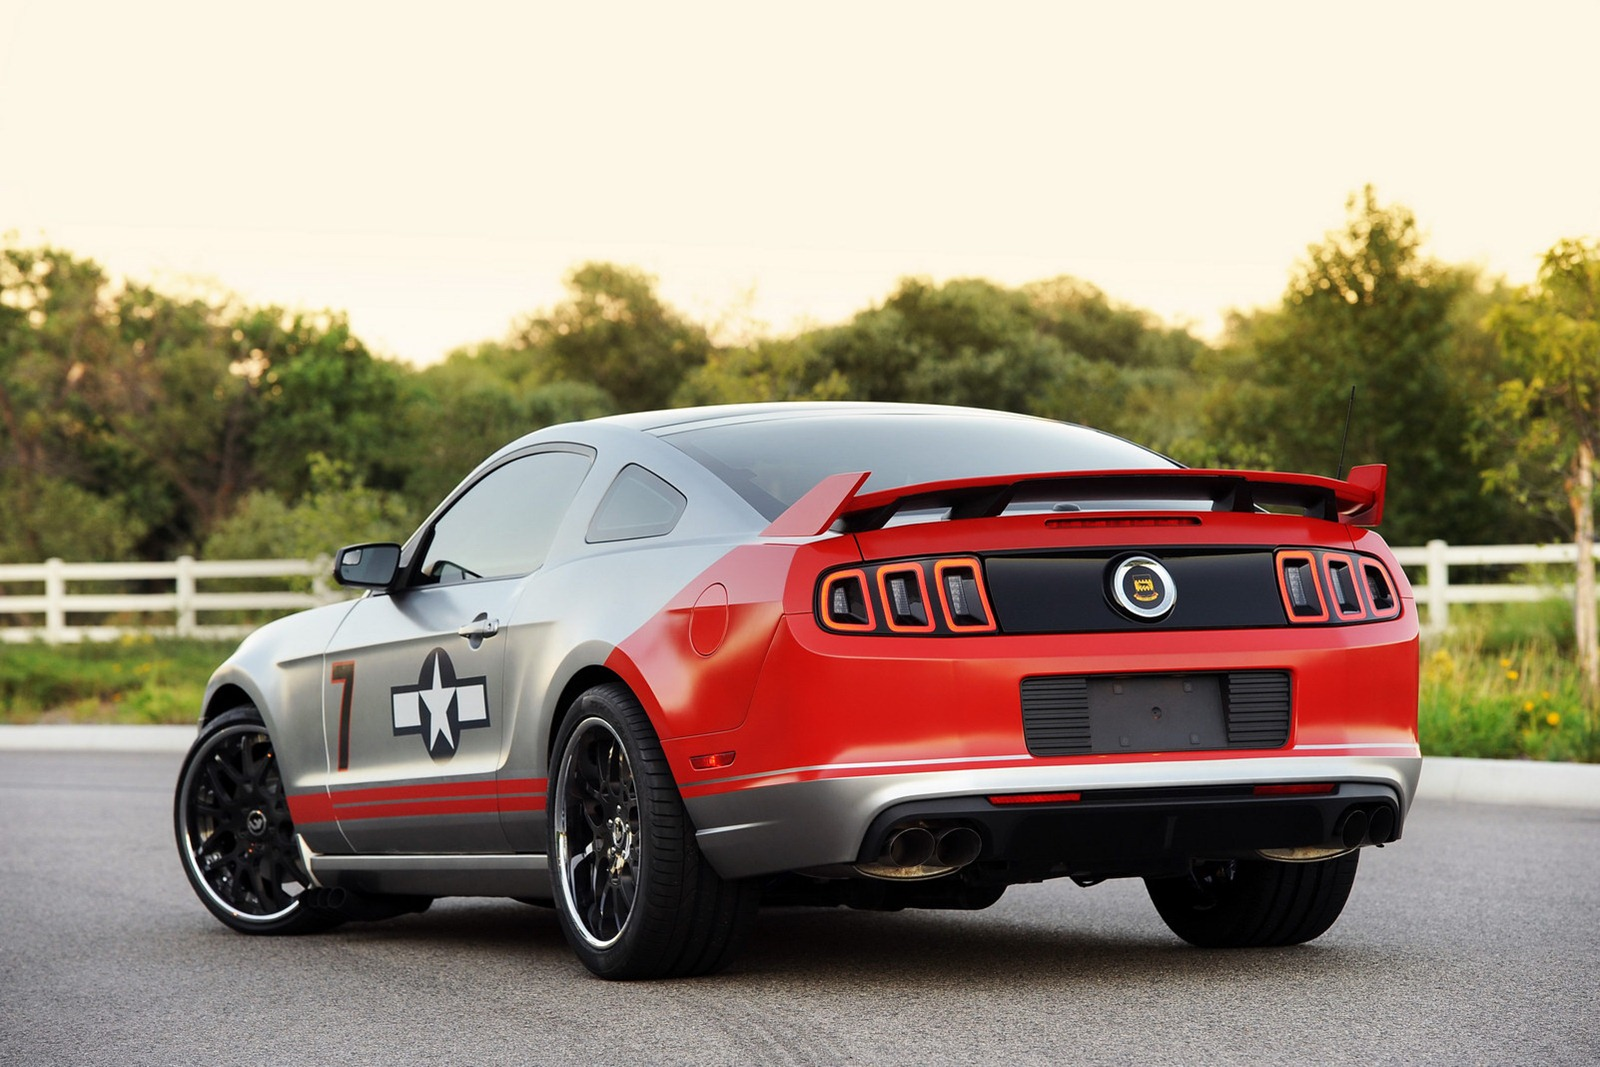 Lucky 8 Auto >> 2013 Mustang GT Livered After P-51 Fighter - autoevolution